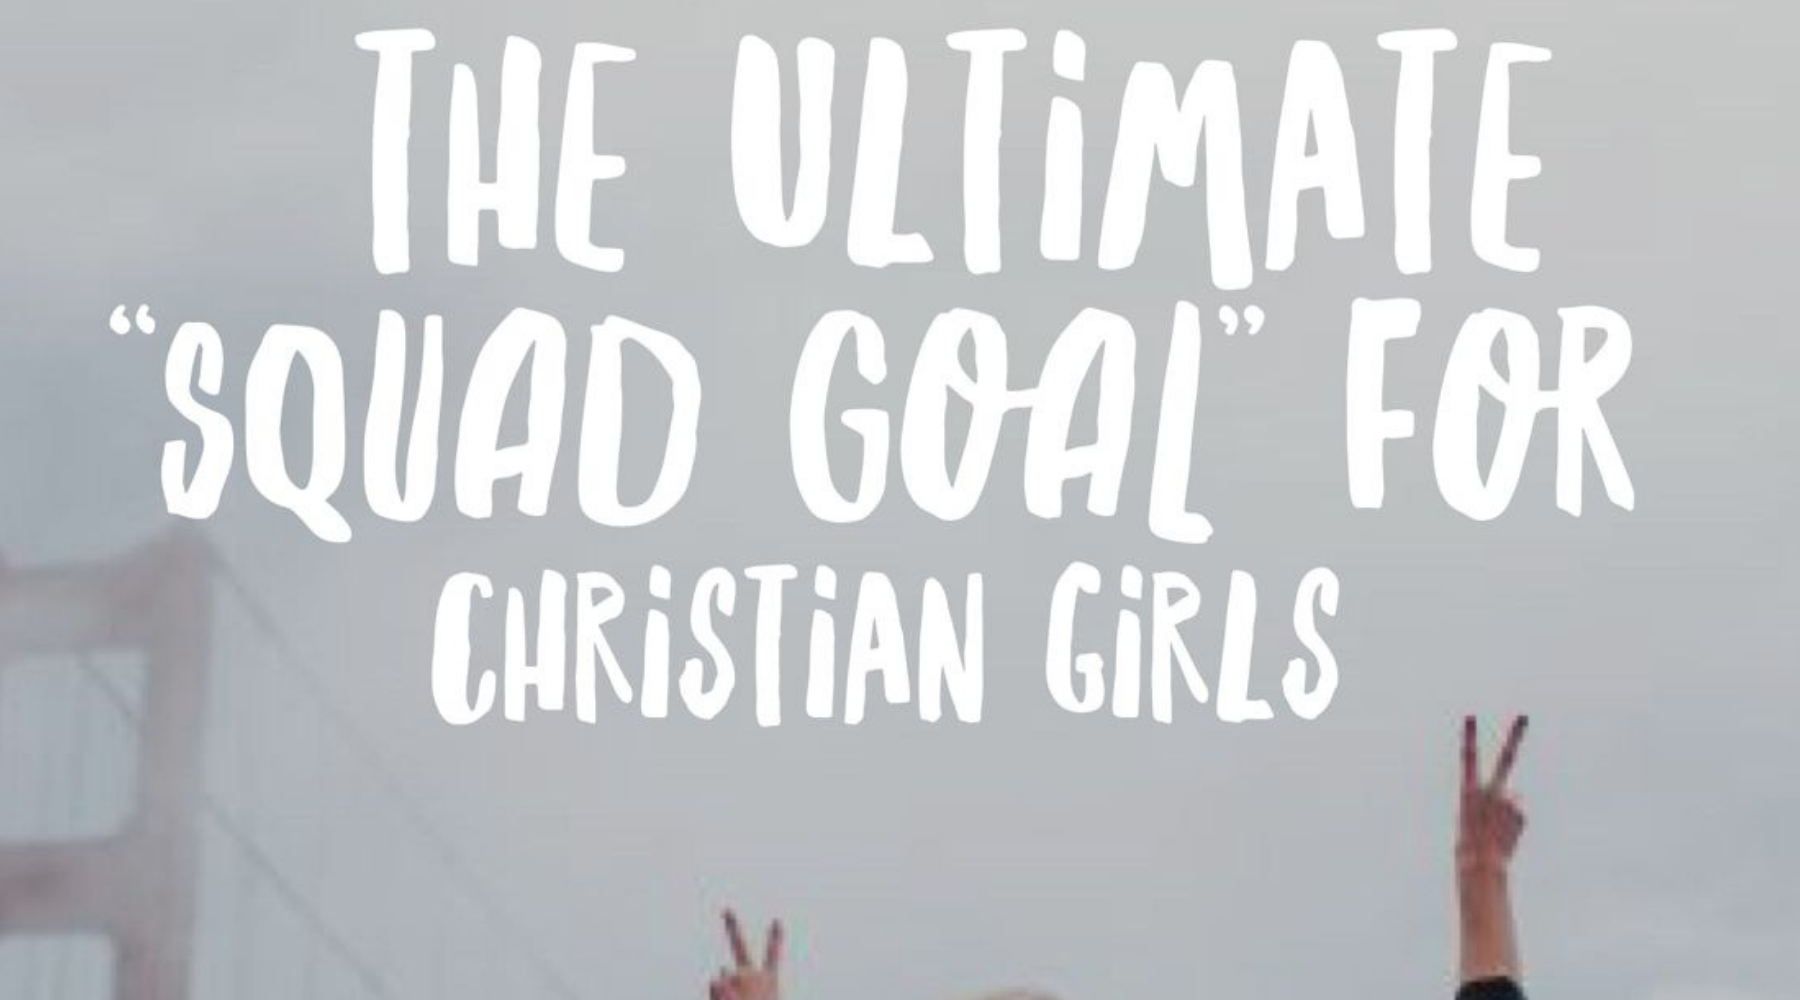 FRESH List of Christian Girls Blogs and Sites For Guest Posting wallpaper